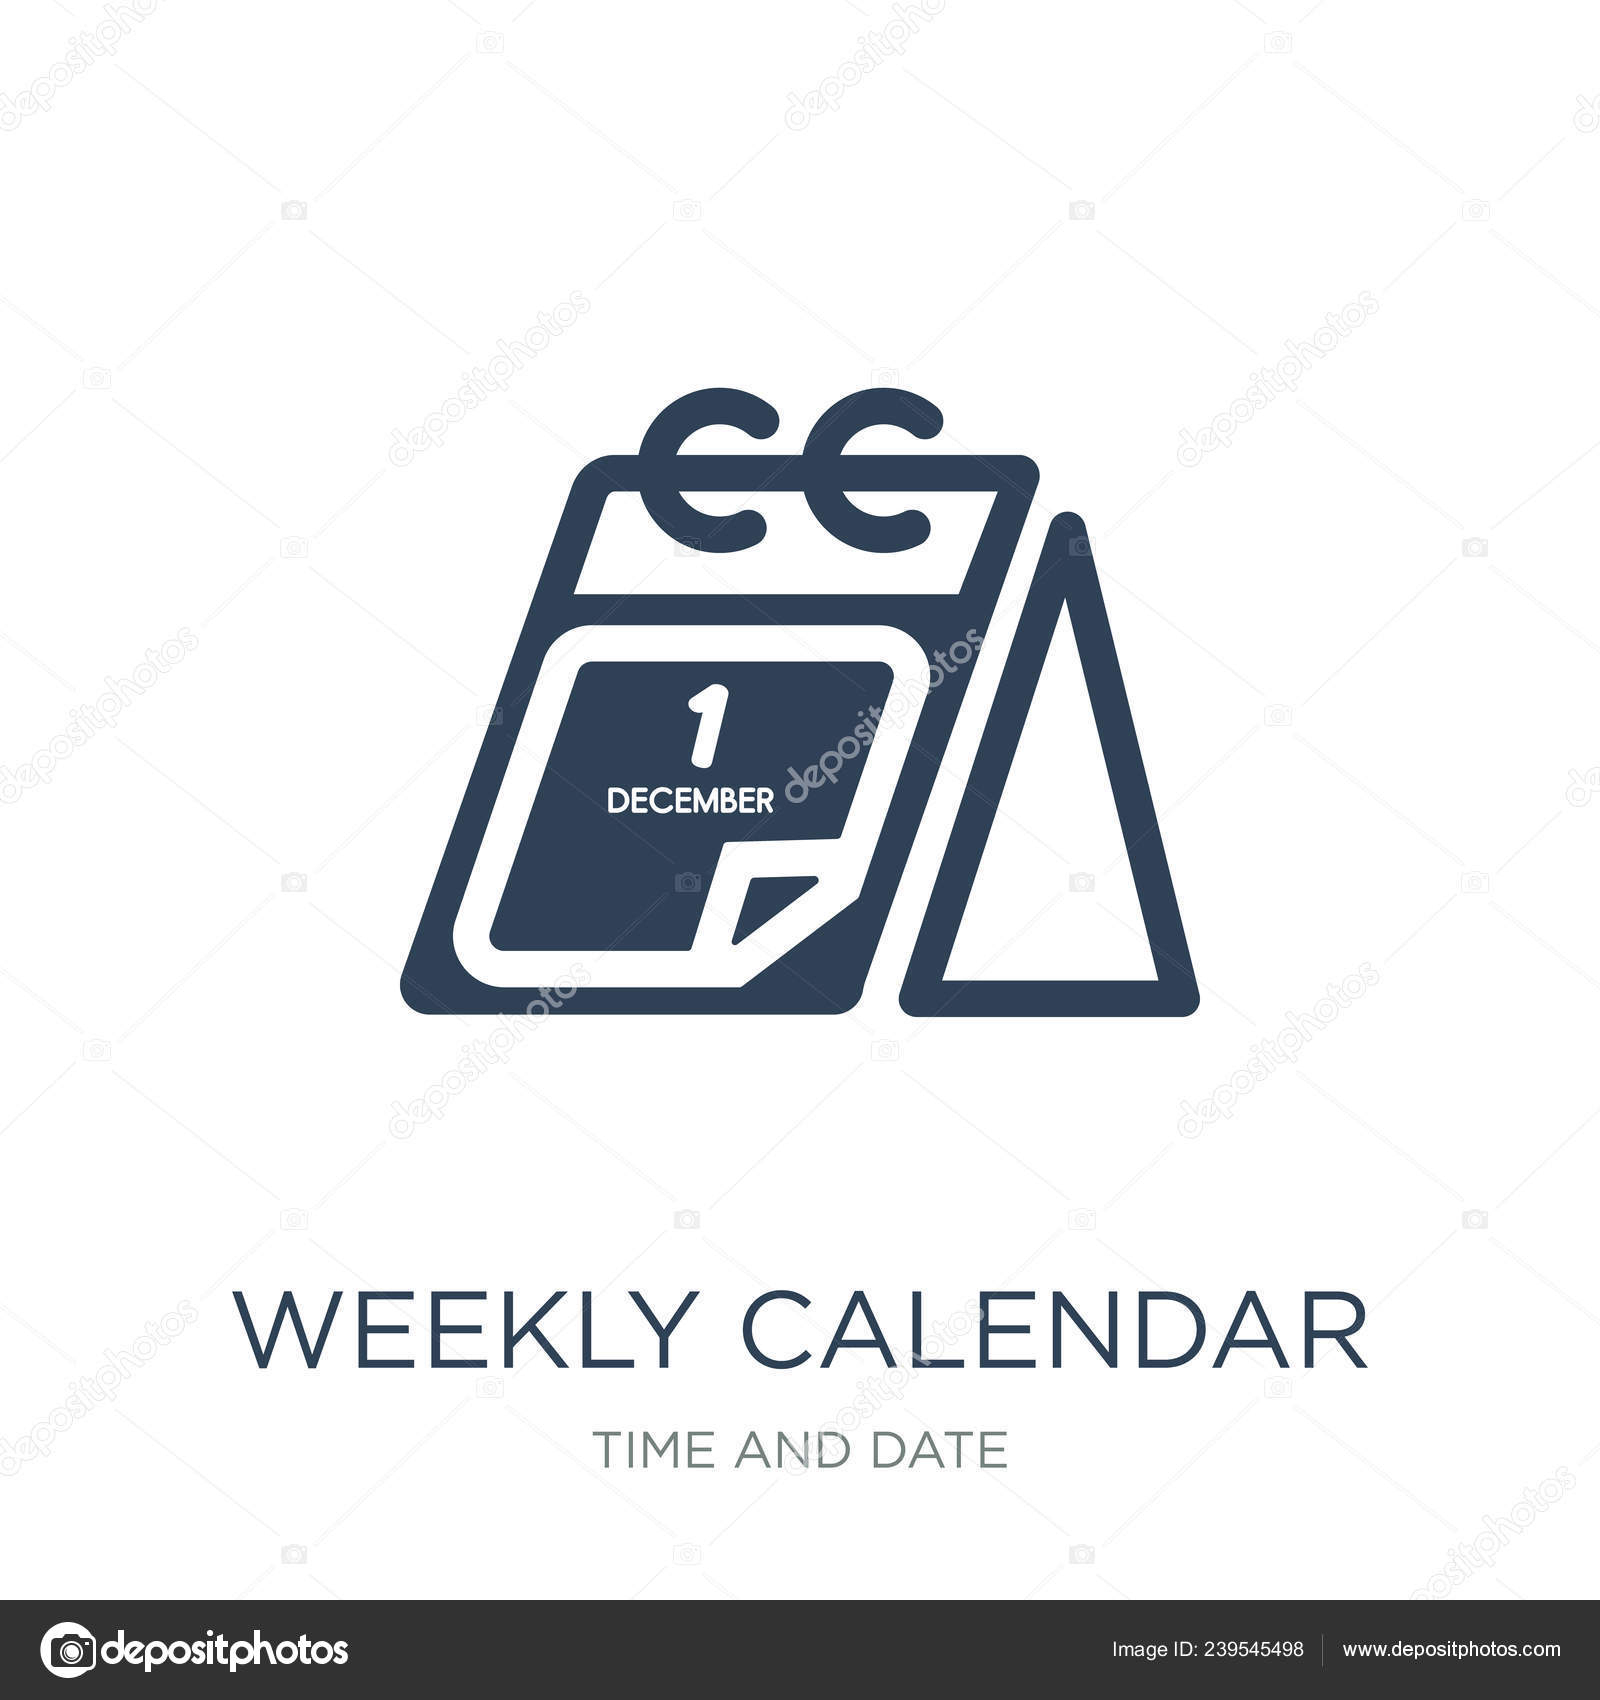 Weekly Calendar Icon Vector White Background Weekly Calendar with regard to Time And Date Weekly Calendar